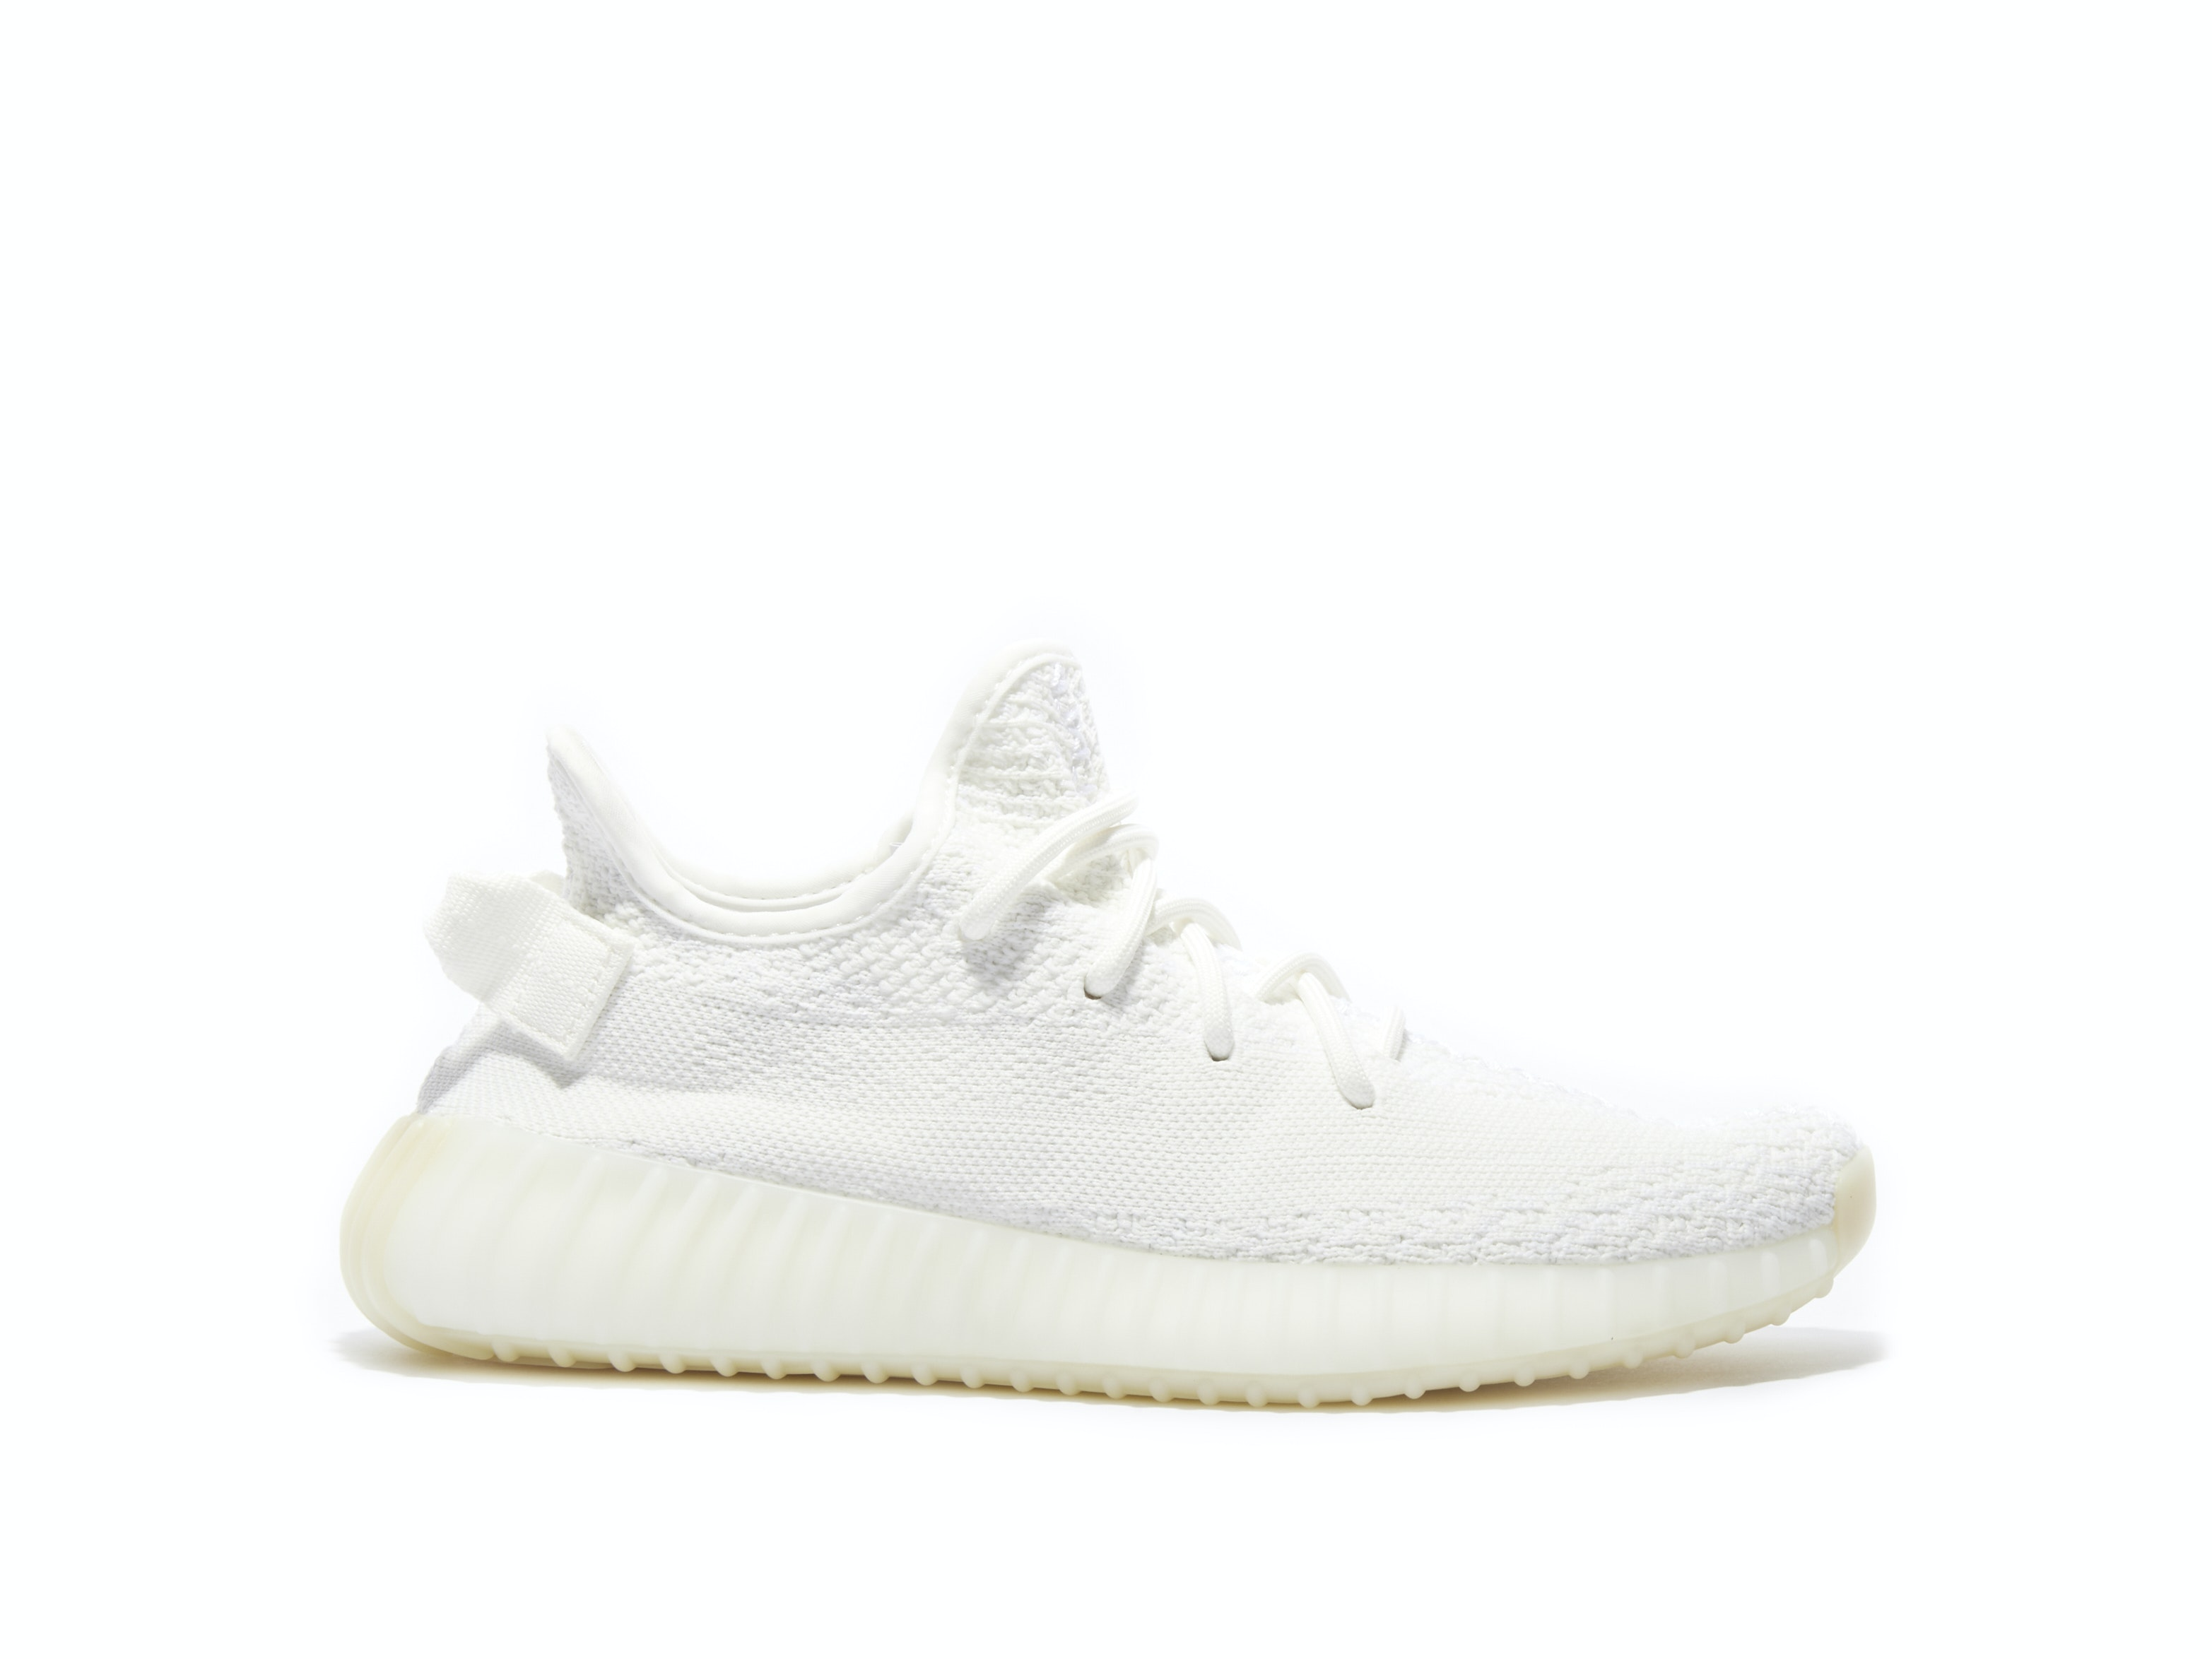 100% authentic 776c3 dc31b Yeezy 350 White Trainers | Triple White Yeezy Boost 350 ...